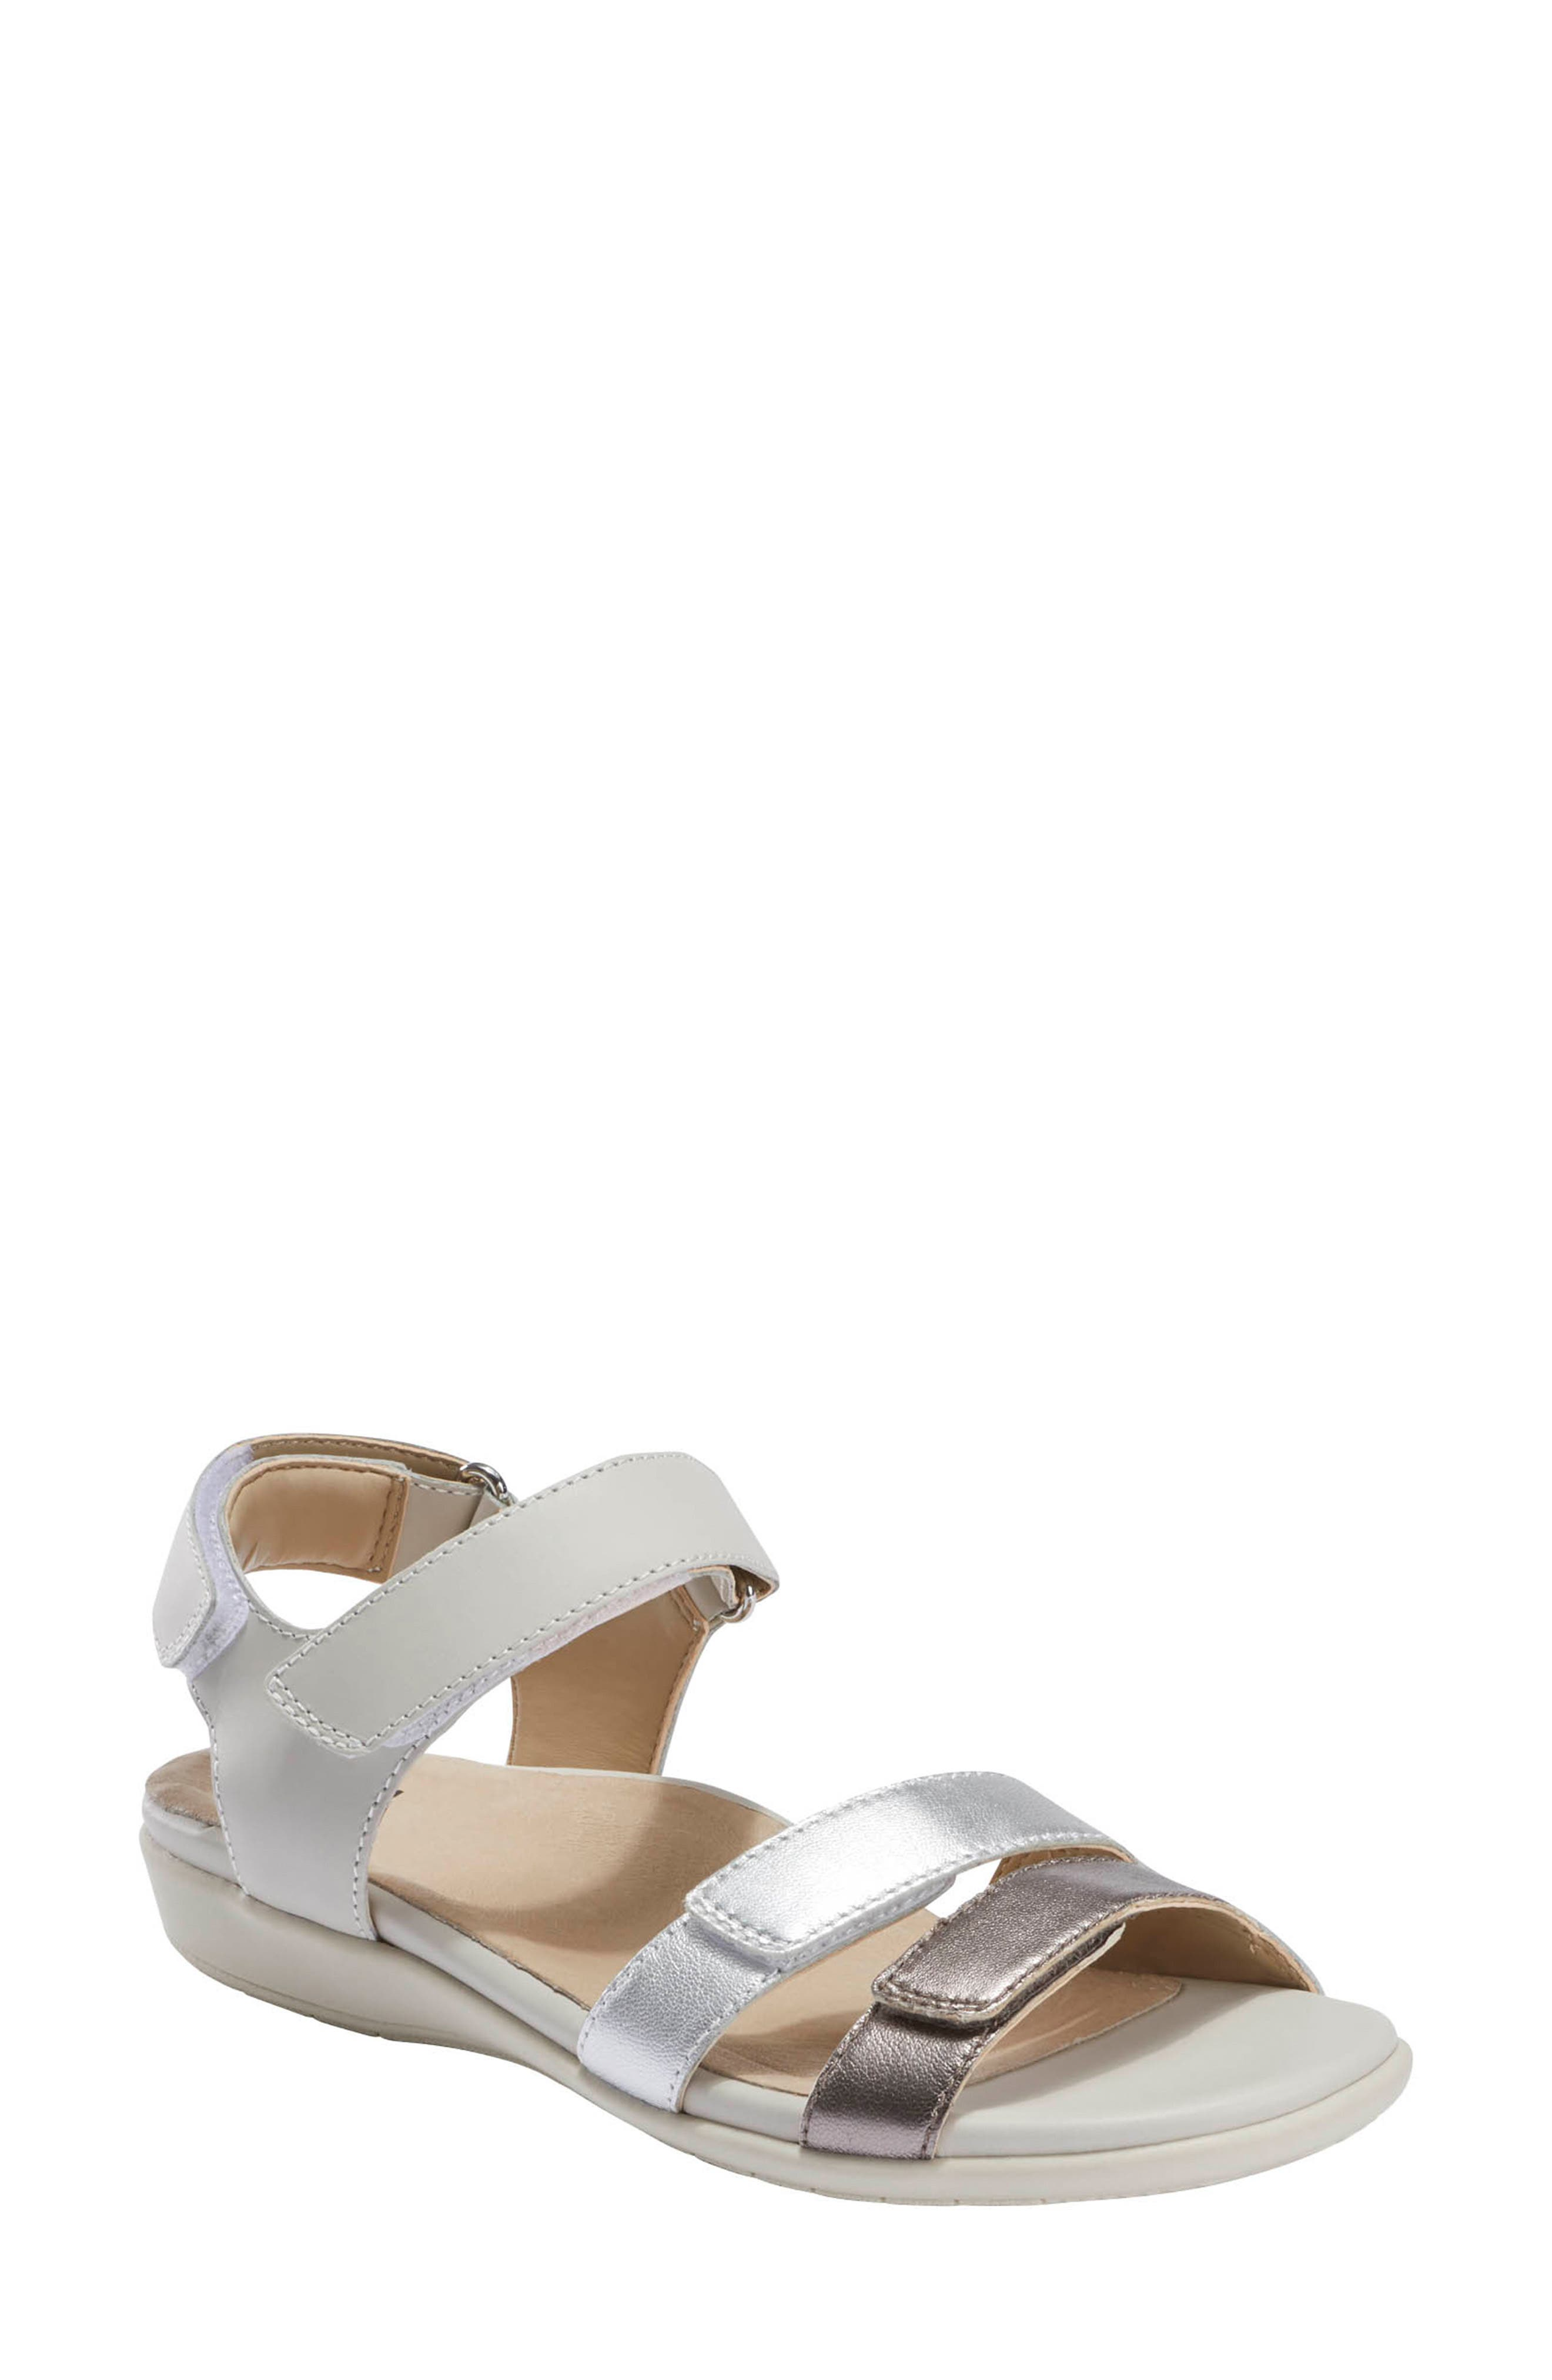 An anatomical Contoured Earth Powerpath footbed with arch support and energy-return foam cushioning offers serious comfort in this breezy elastic-strap sandal. Style Name: Earth Alder Amal Sandal (Women). Style Number: 6024110 1. Available in stores.